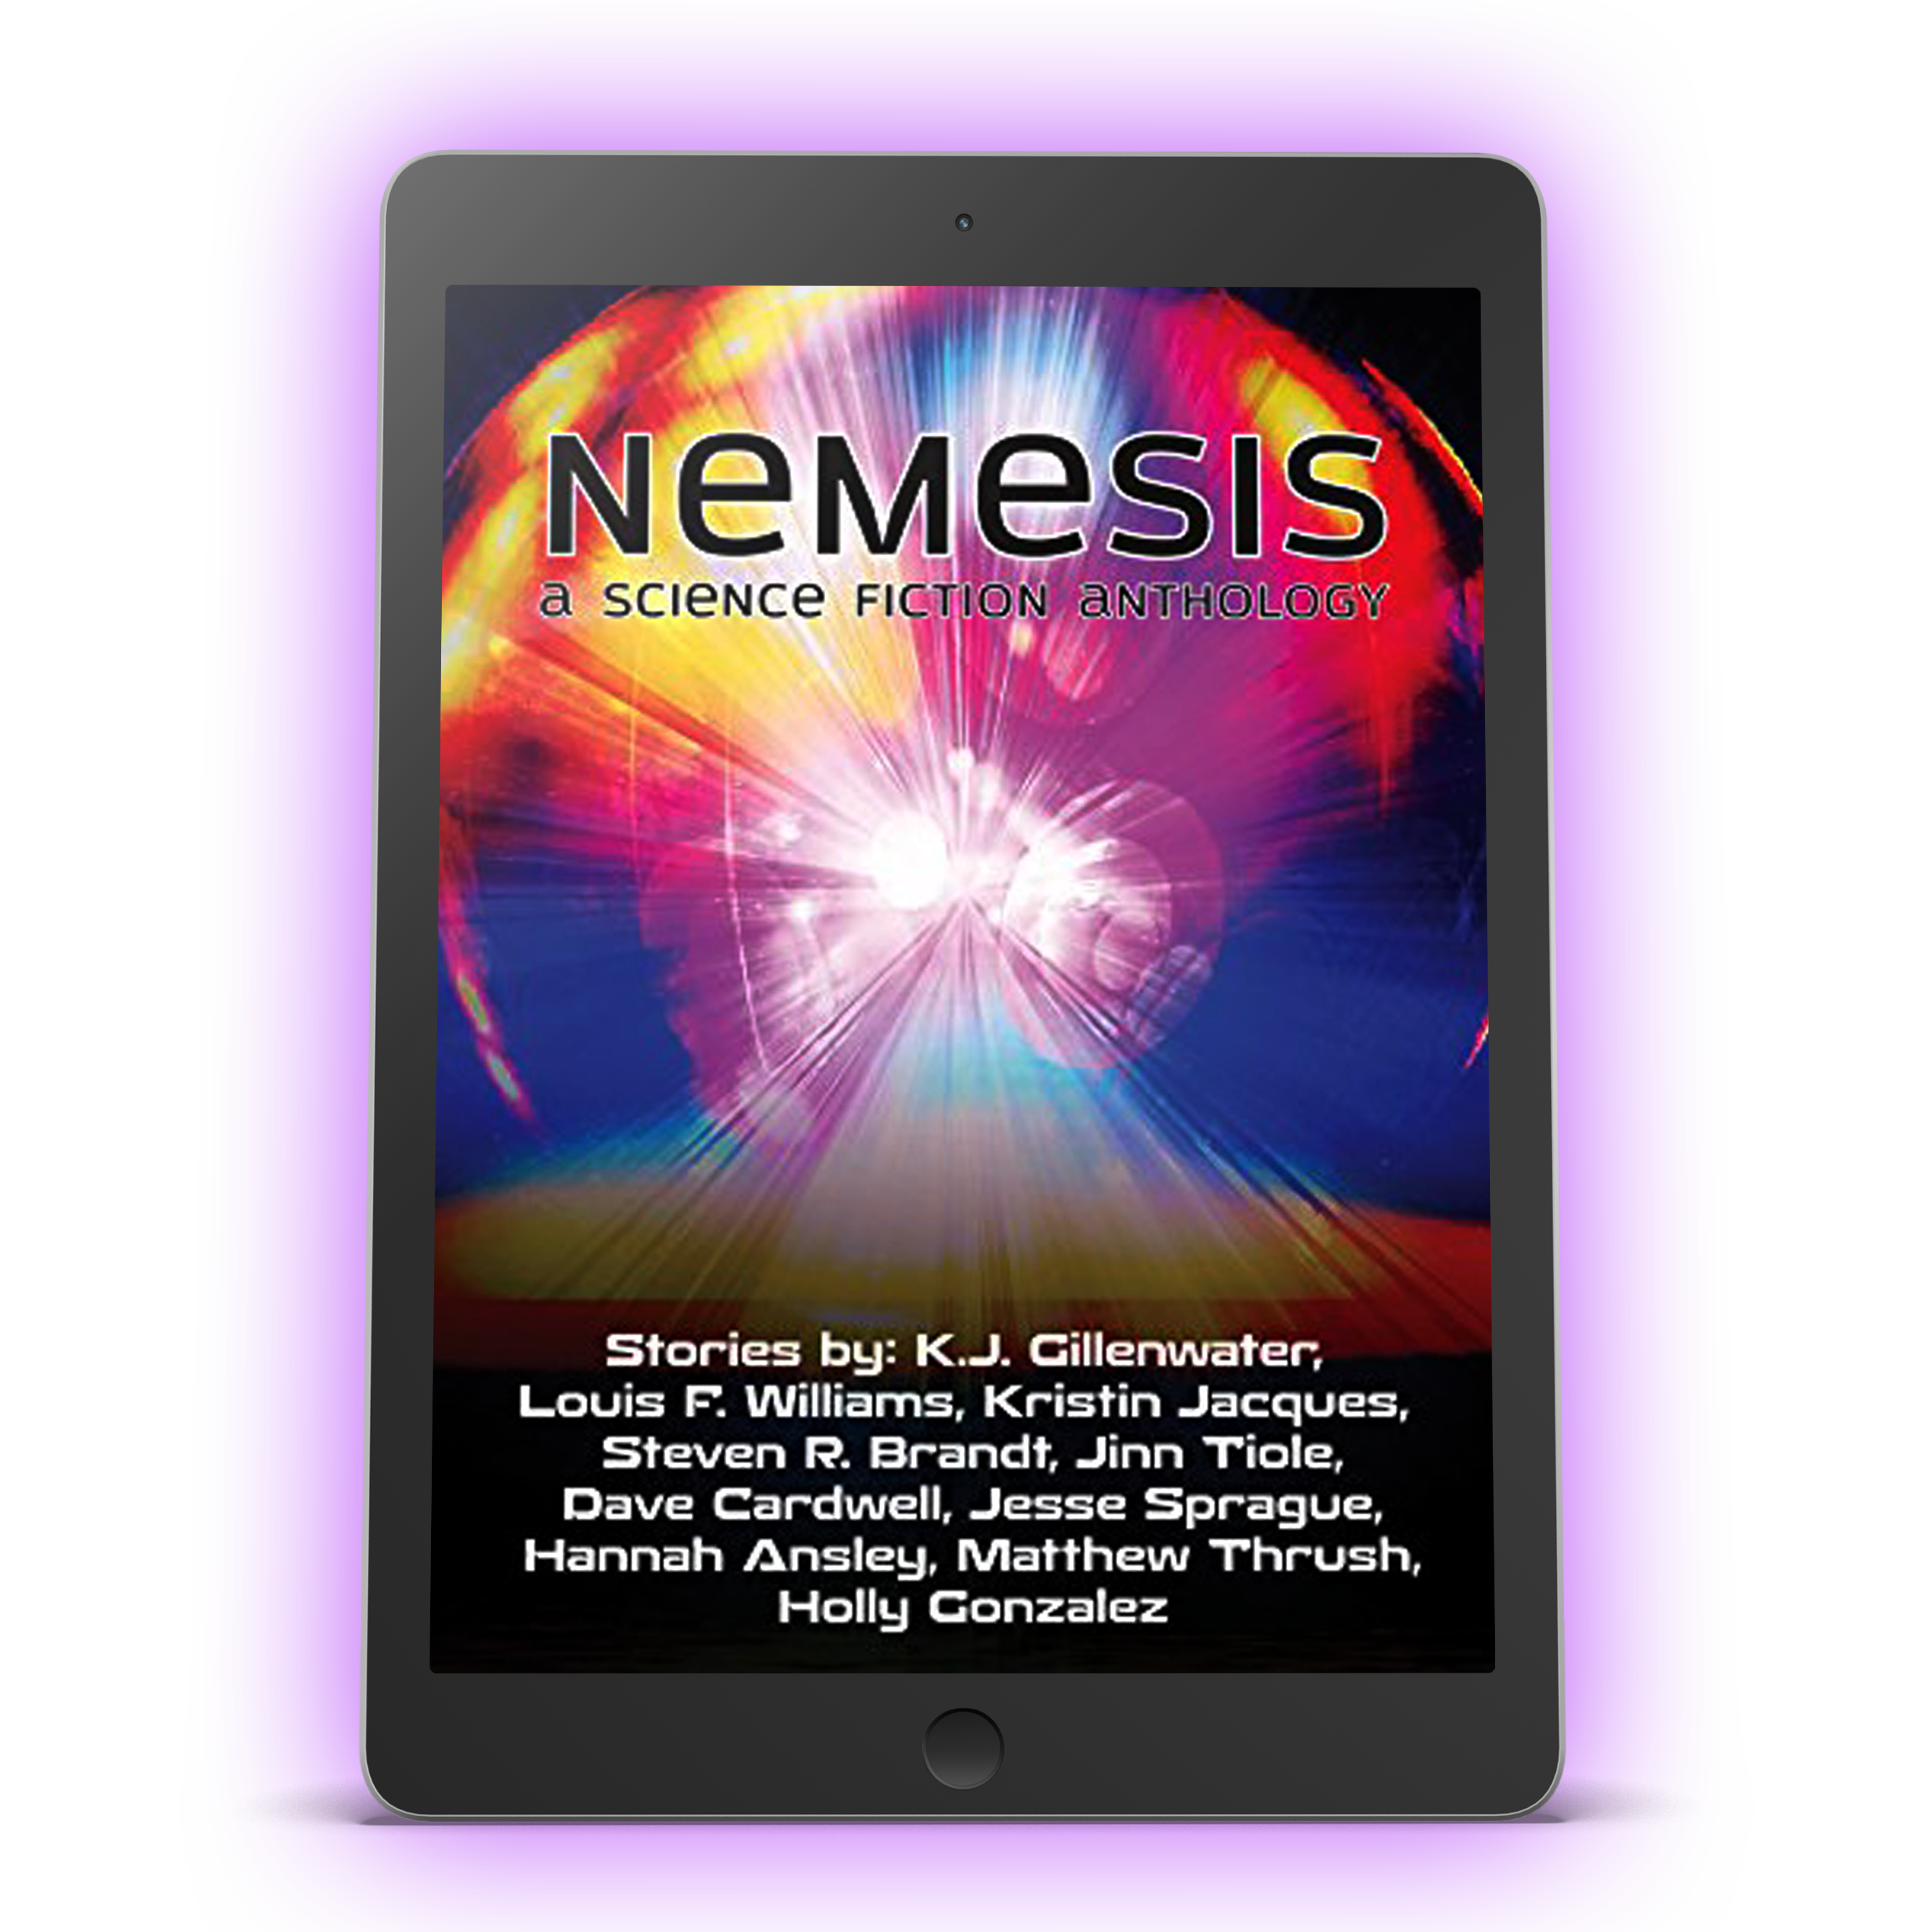 Read Nemesis: A Science Fiction Anthology | www.kristinjacques.com